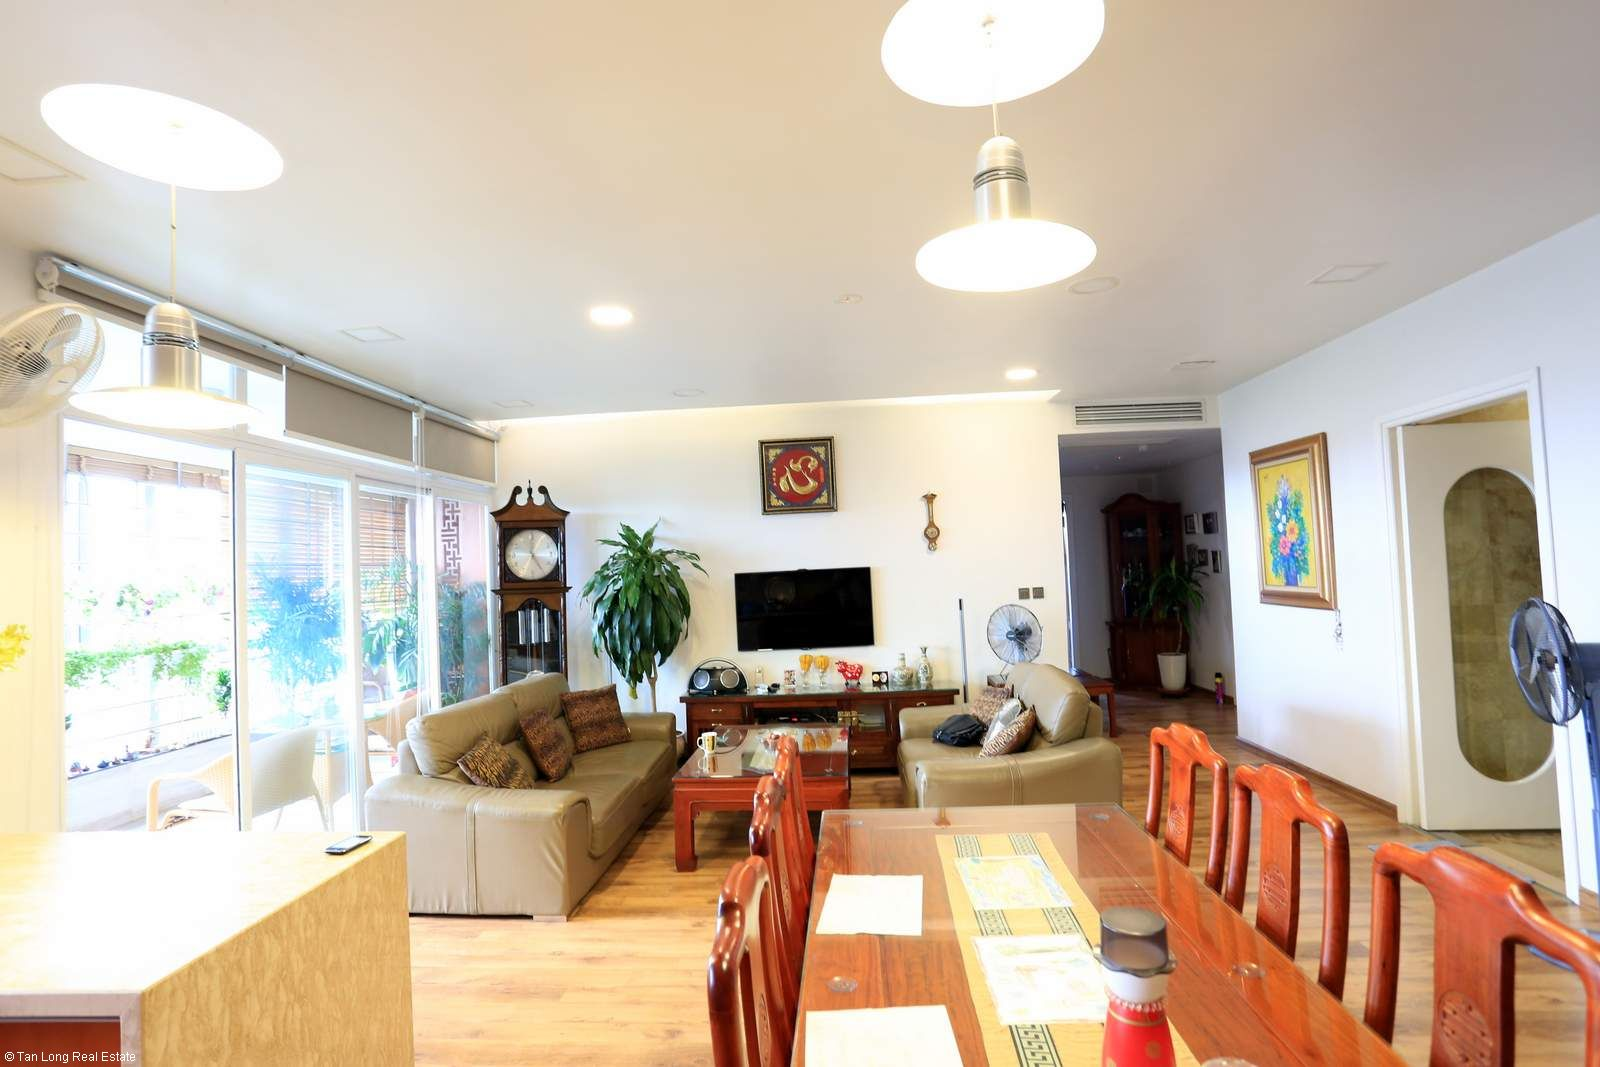 3 bedroom apartment in 671 Hoang Hoa Tham rental. 3